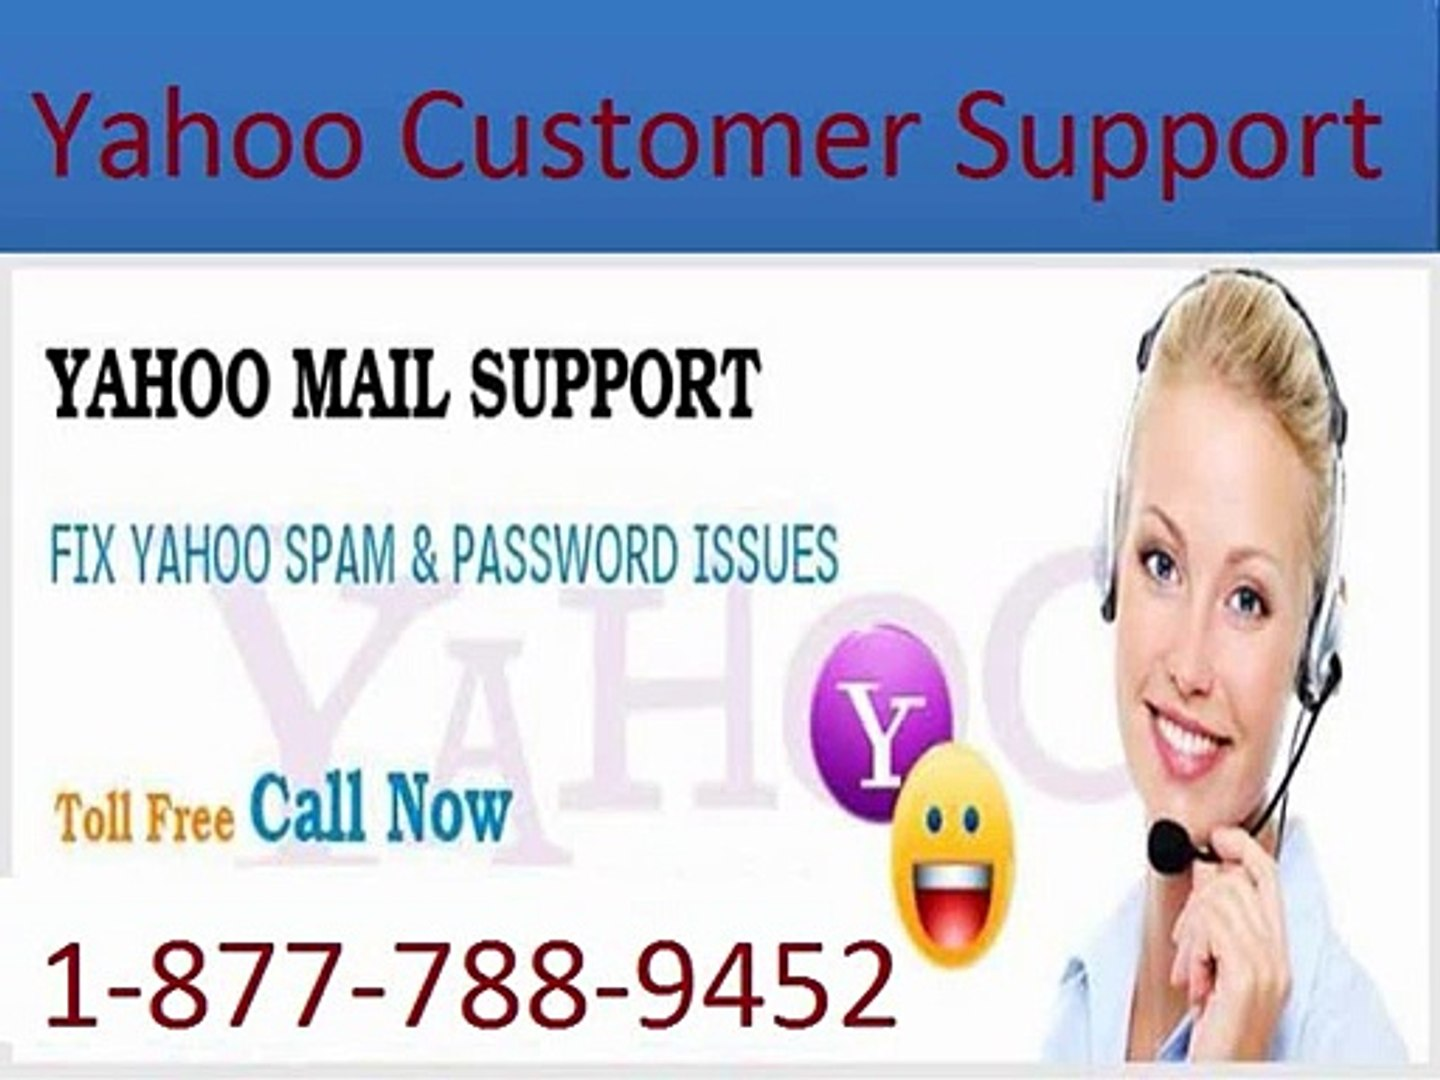 Call Yahoo Customer Support 1-877-788-9452 Toll Free for Yahoo Support